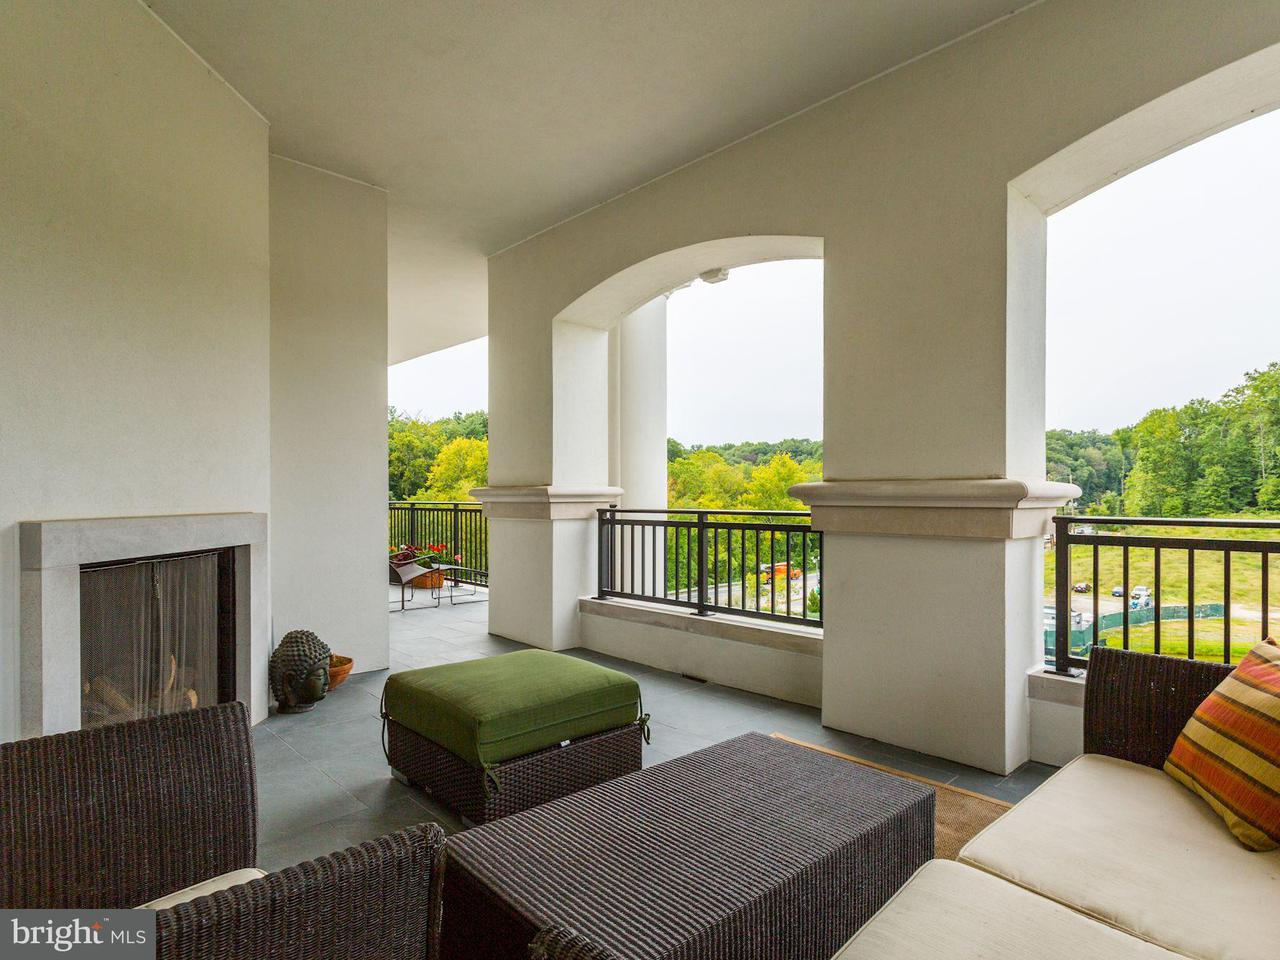 Additional photo for property listing at 8111 RIVER RD #151 8111 RIVER RD #151 Bethesda, Maryland 20817 United States